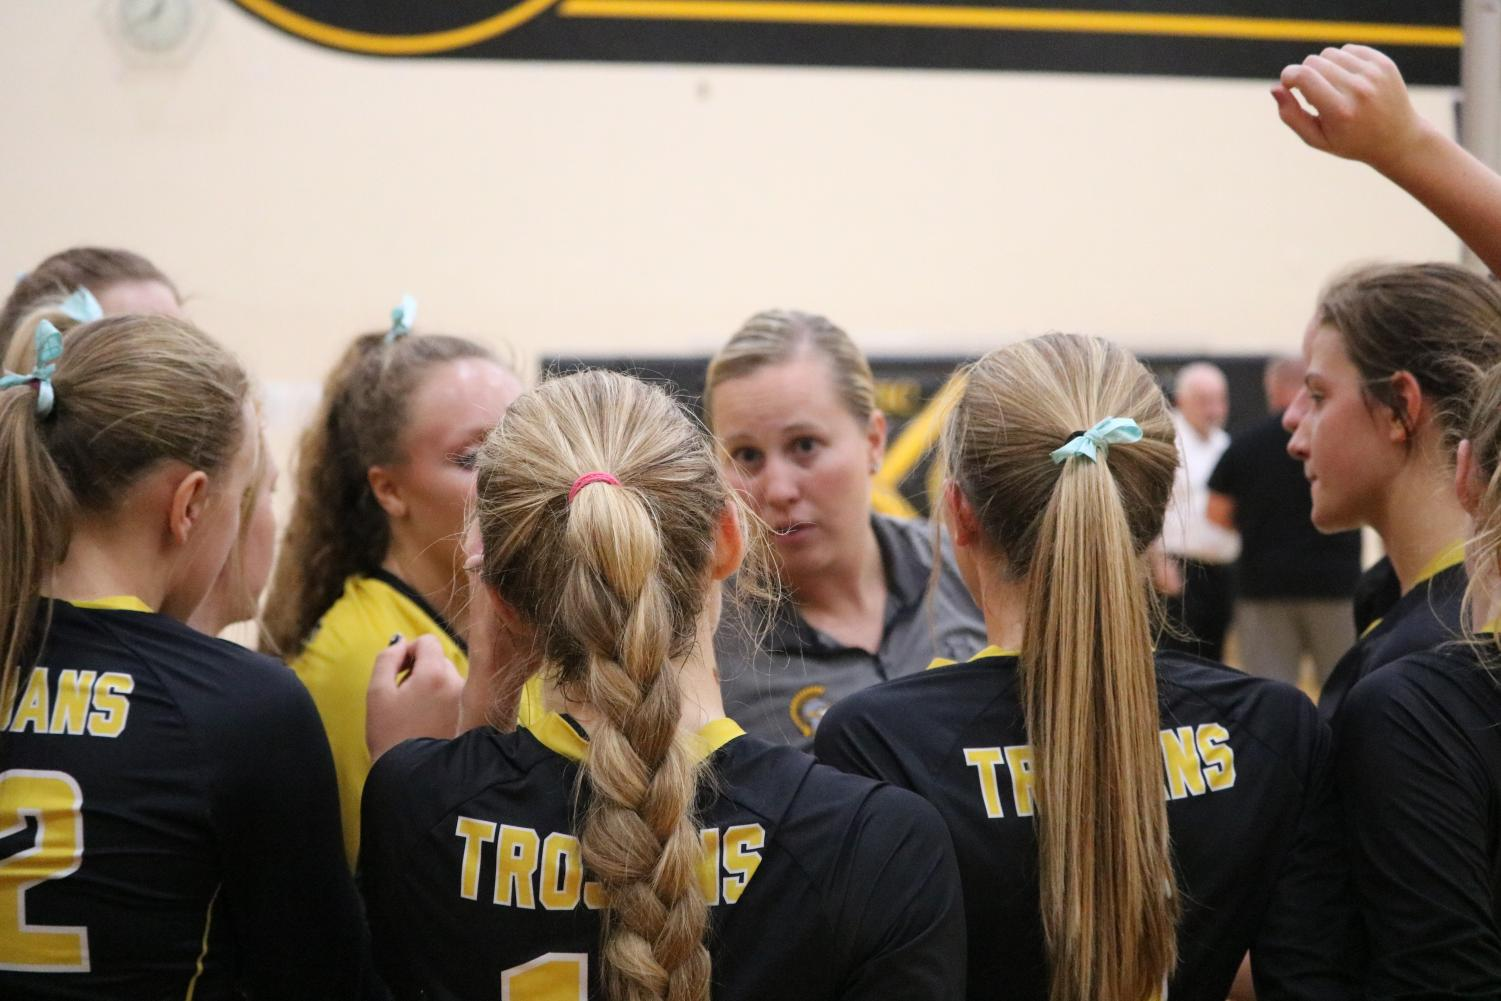 The volleyball girls listen intently to Coach Blake's instructions before heading out onto the court.